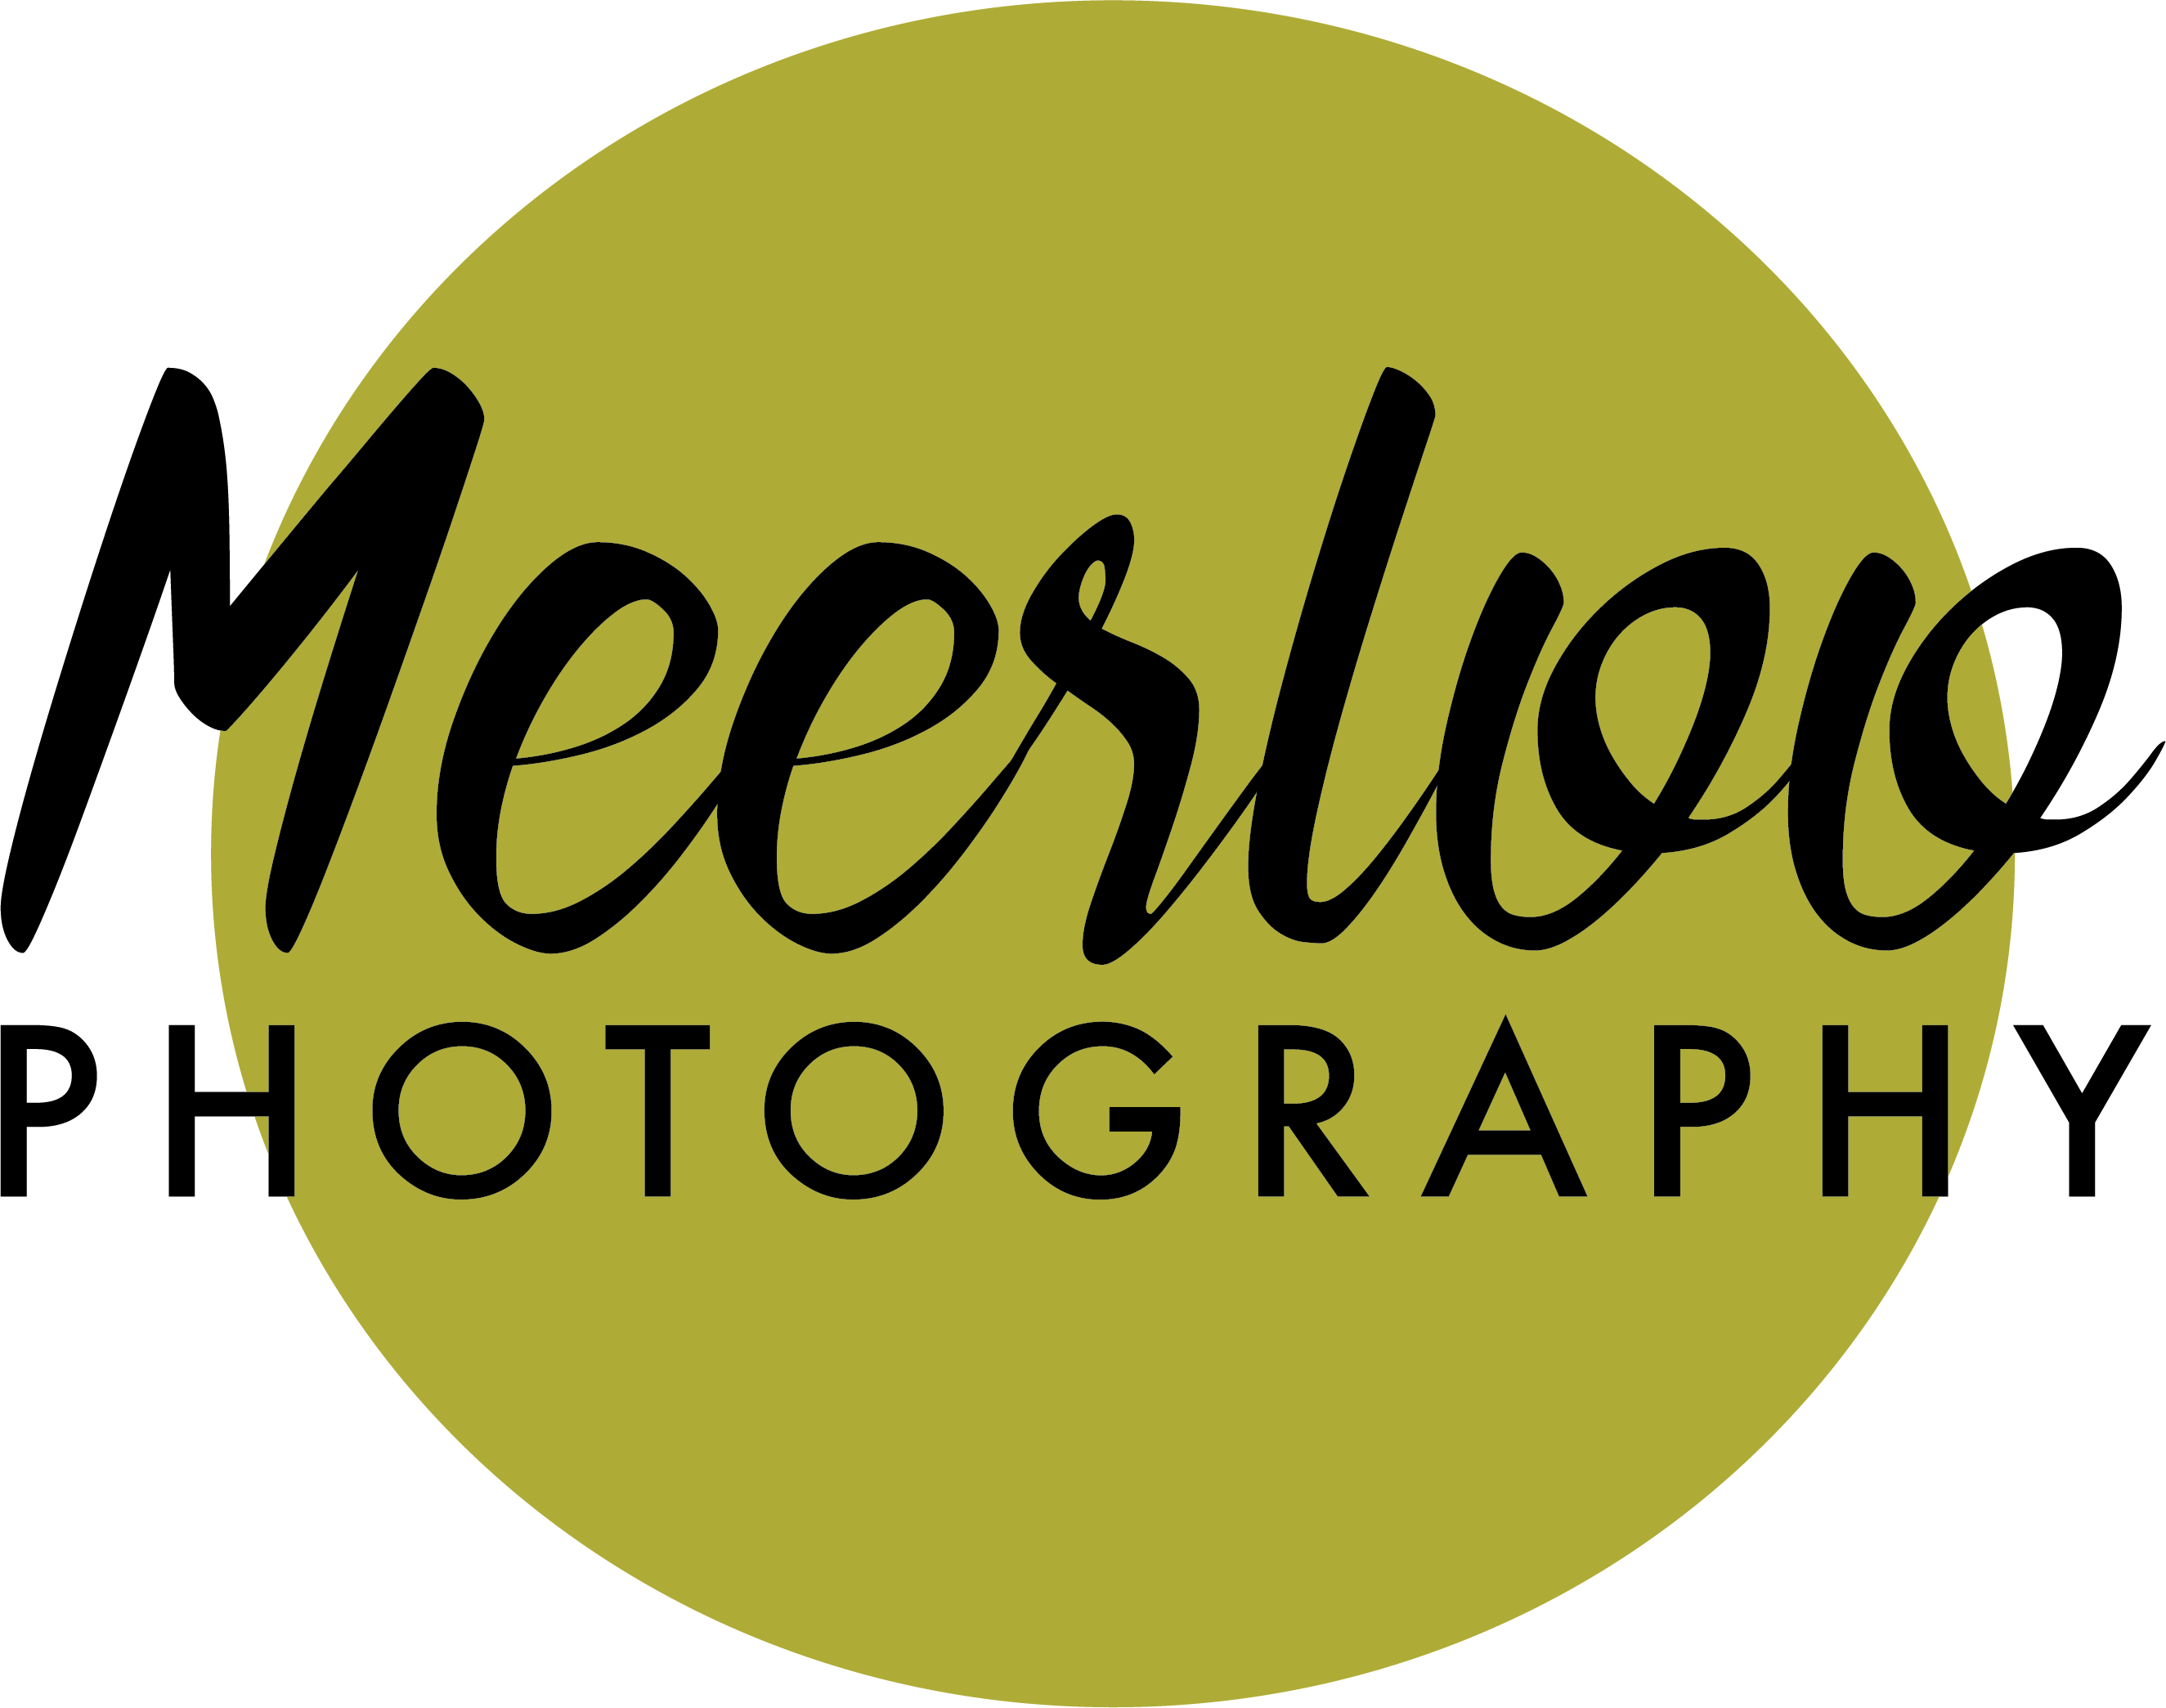 Meerloo Photography